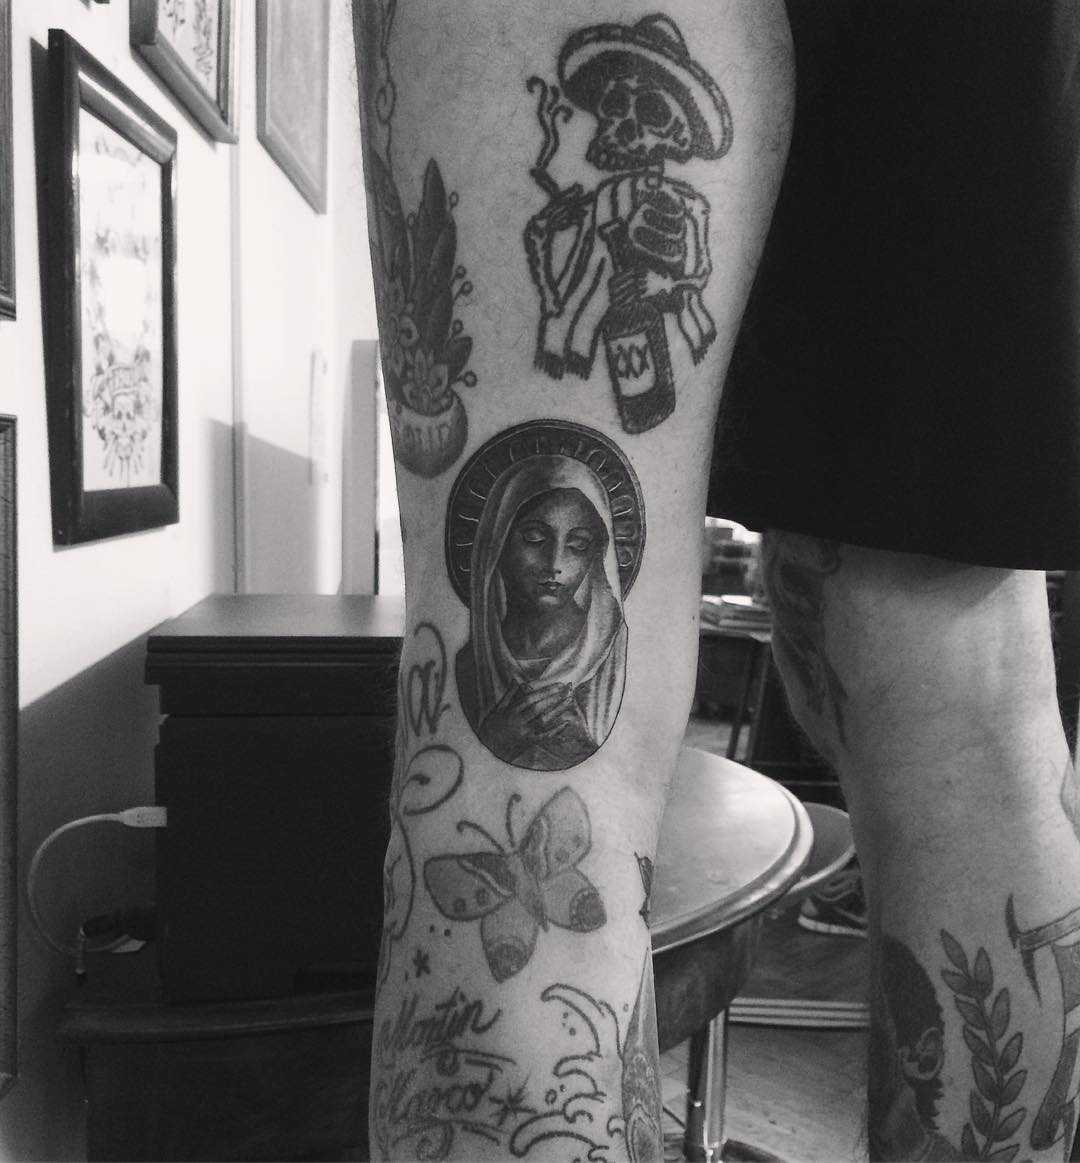 Virgin Mary tattoo by Annelie Fransson